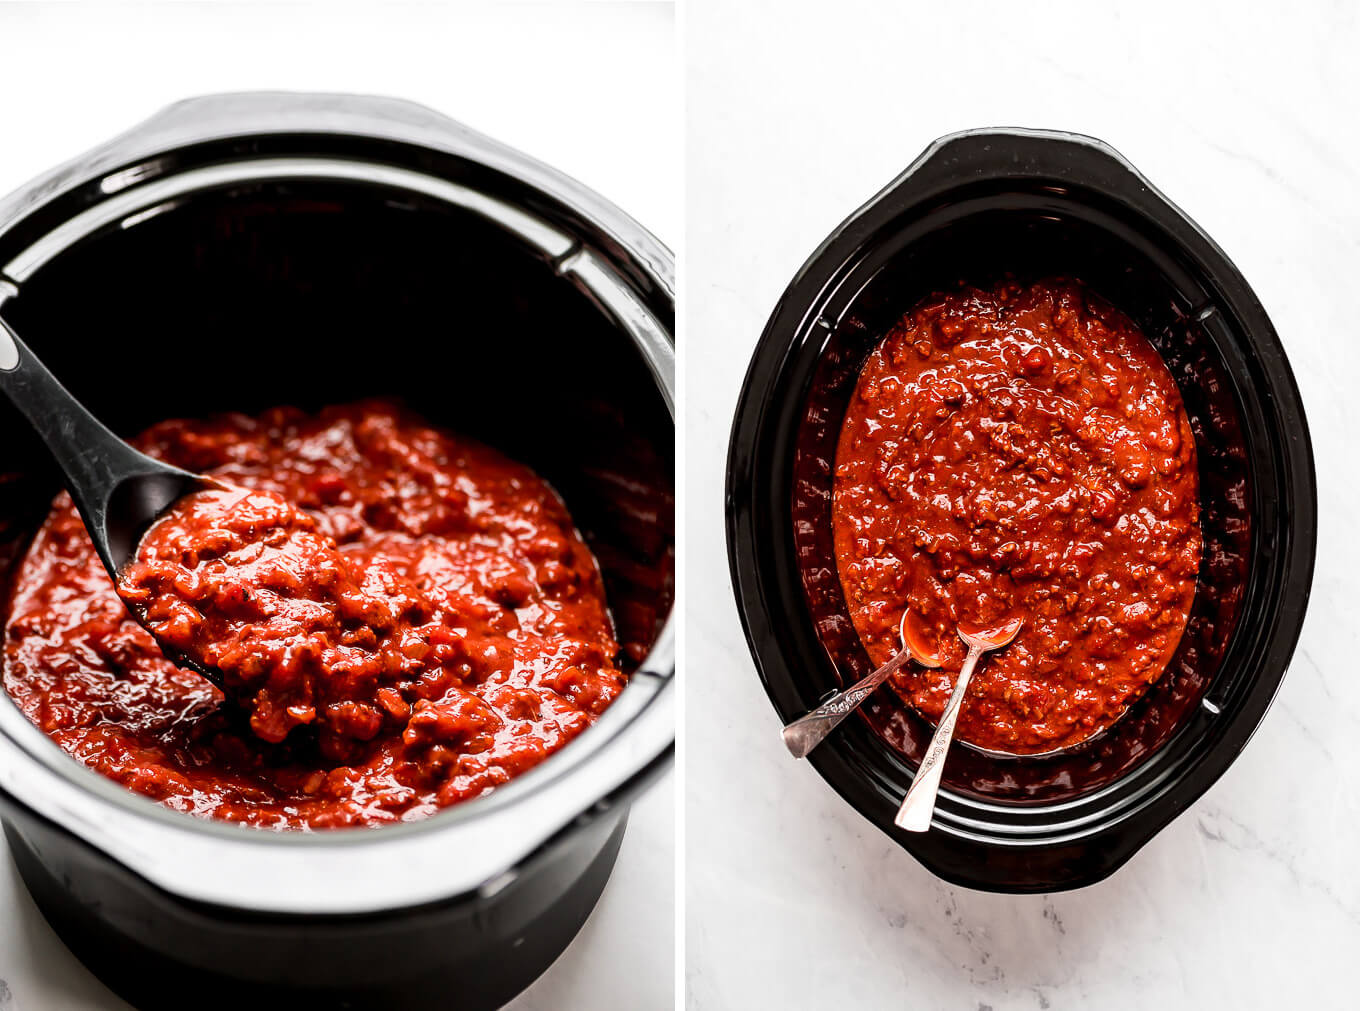 A close up shot of meat loaded spaghetti sauce in a slow cooker.